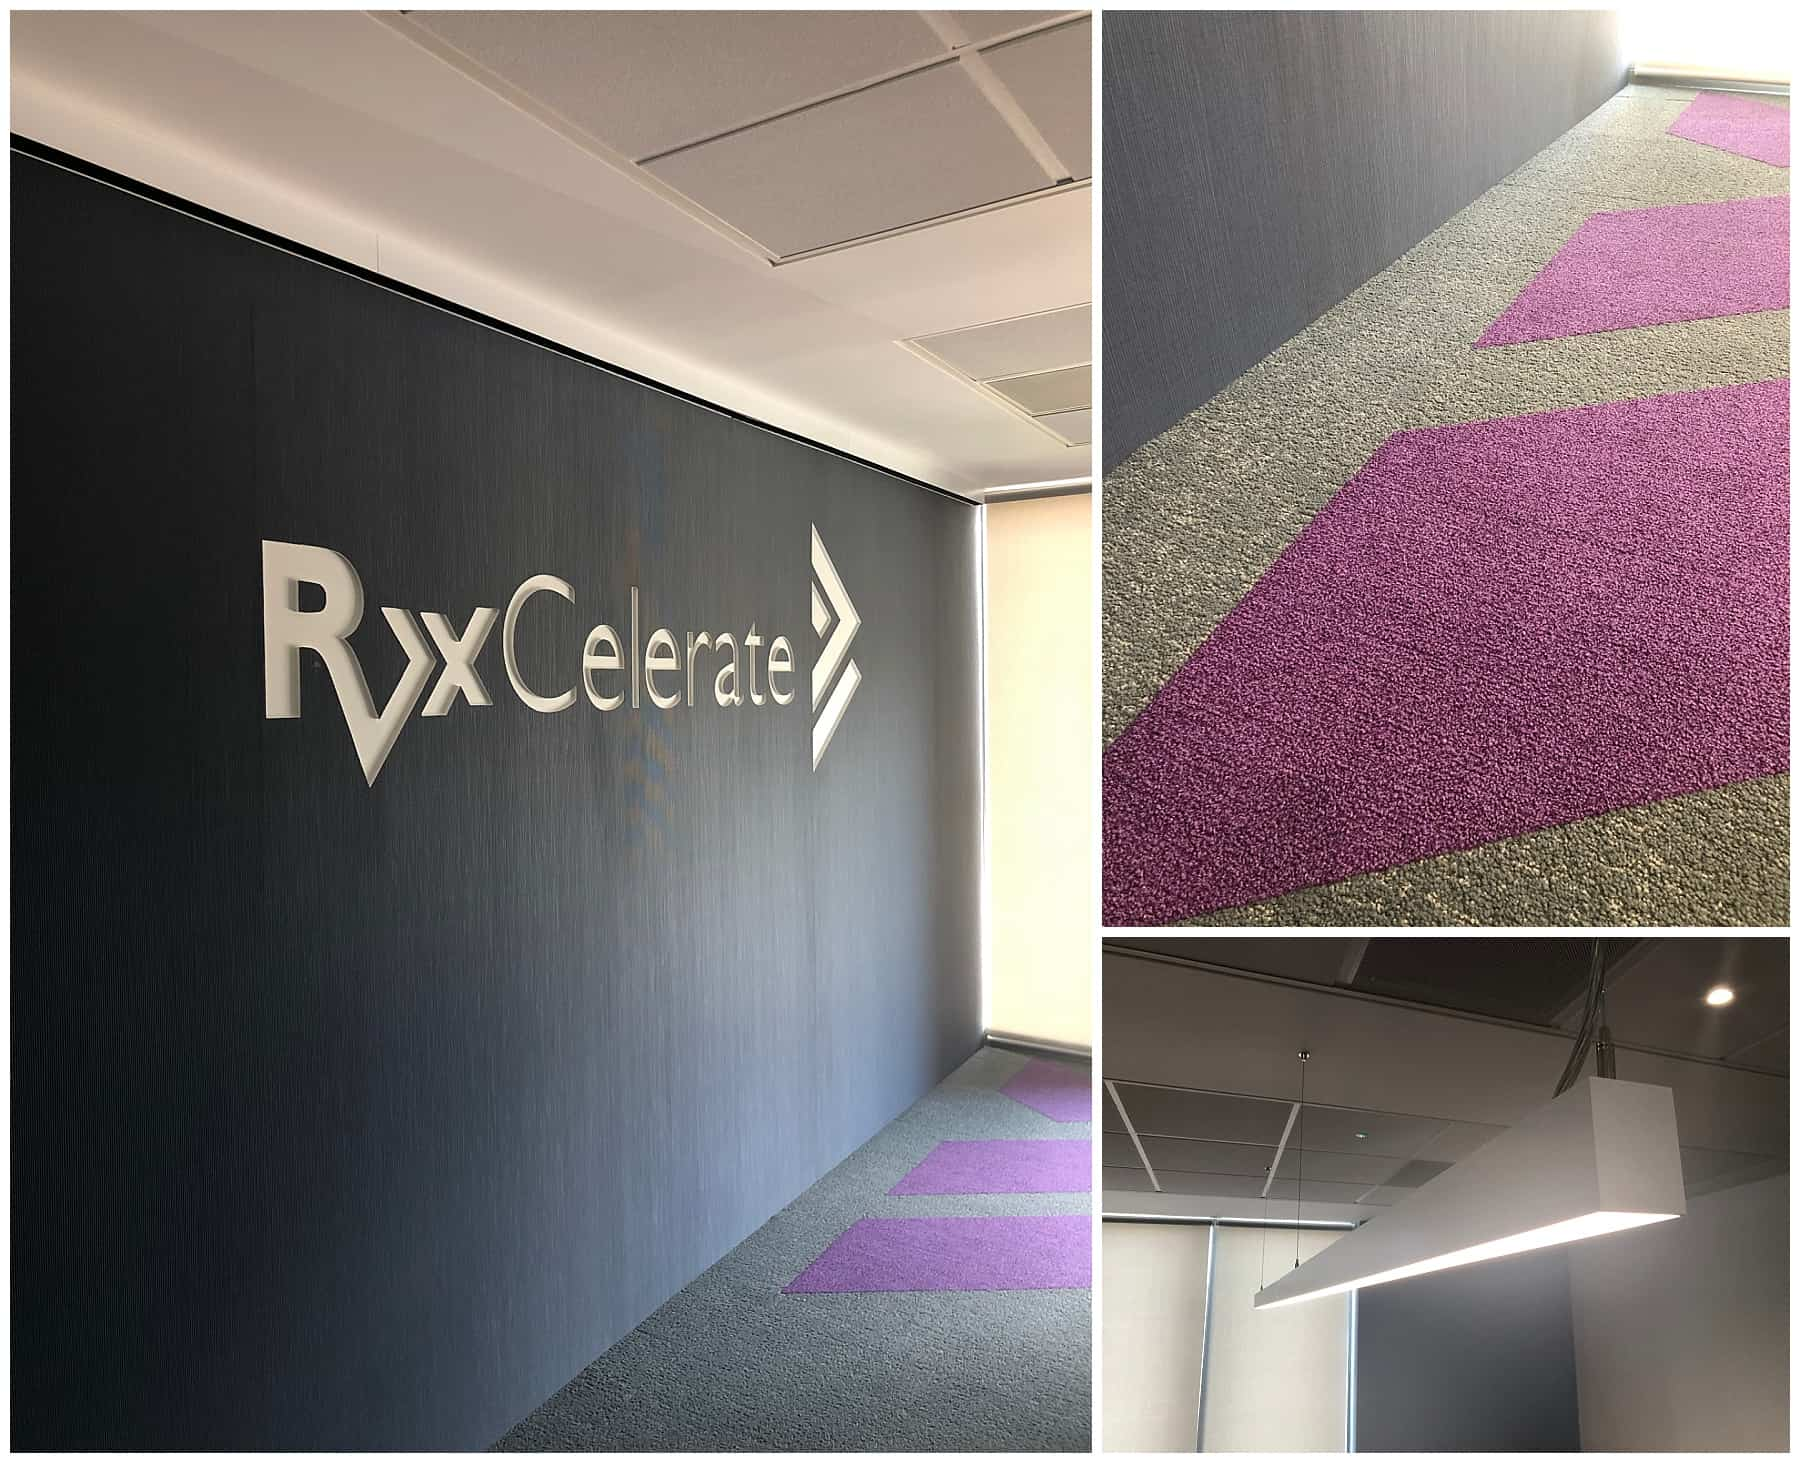 black wall with RxCelerate logo on it and purple patterned carpet and long white light fitting